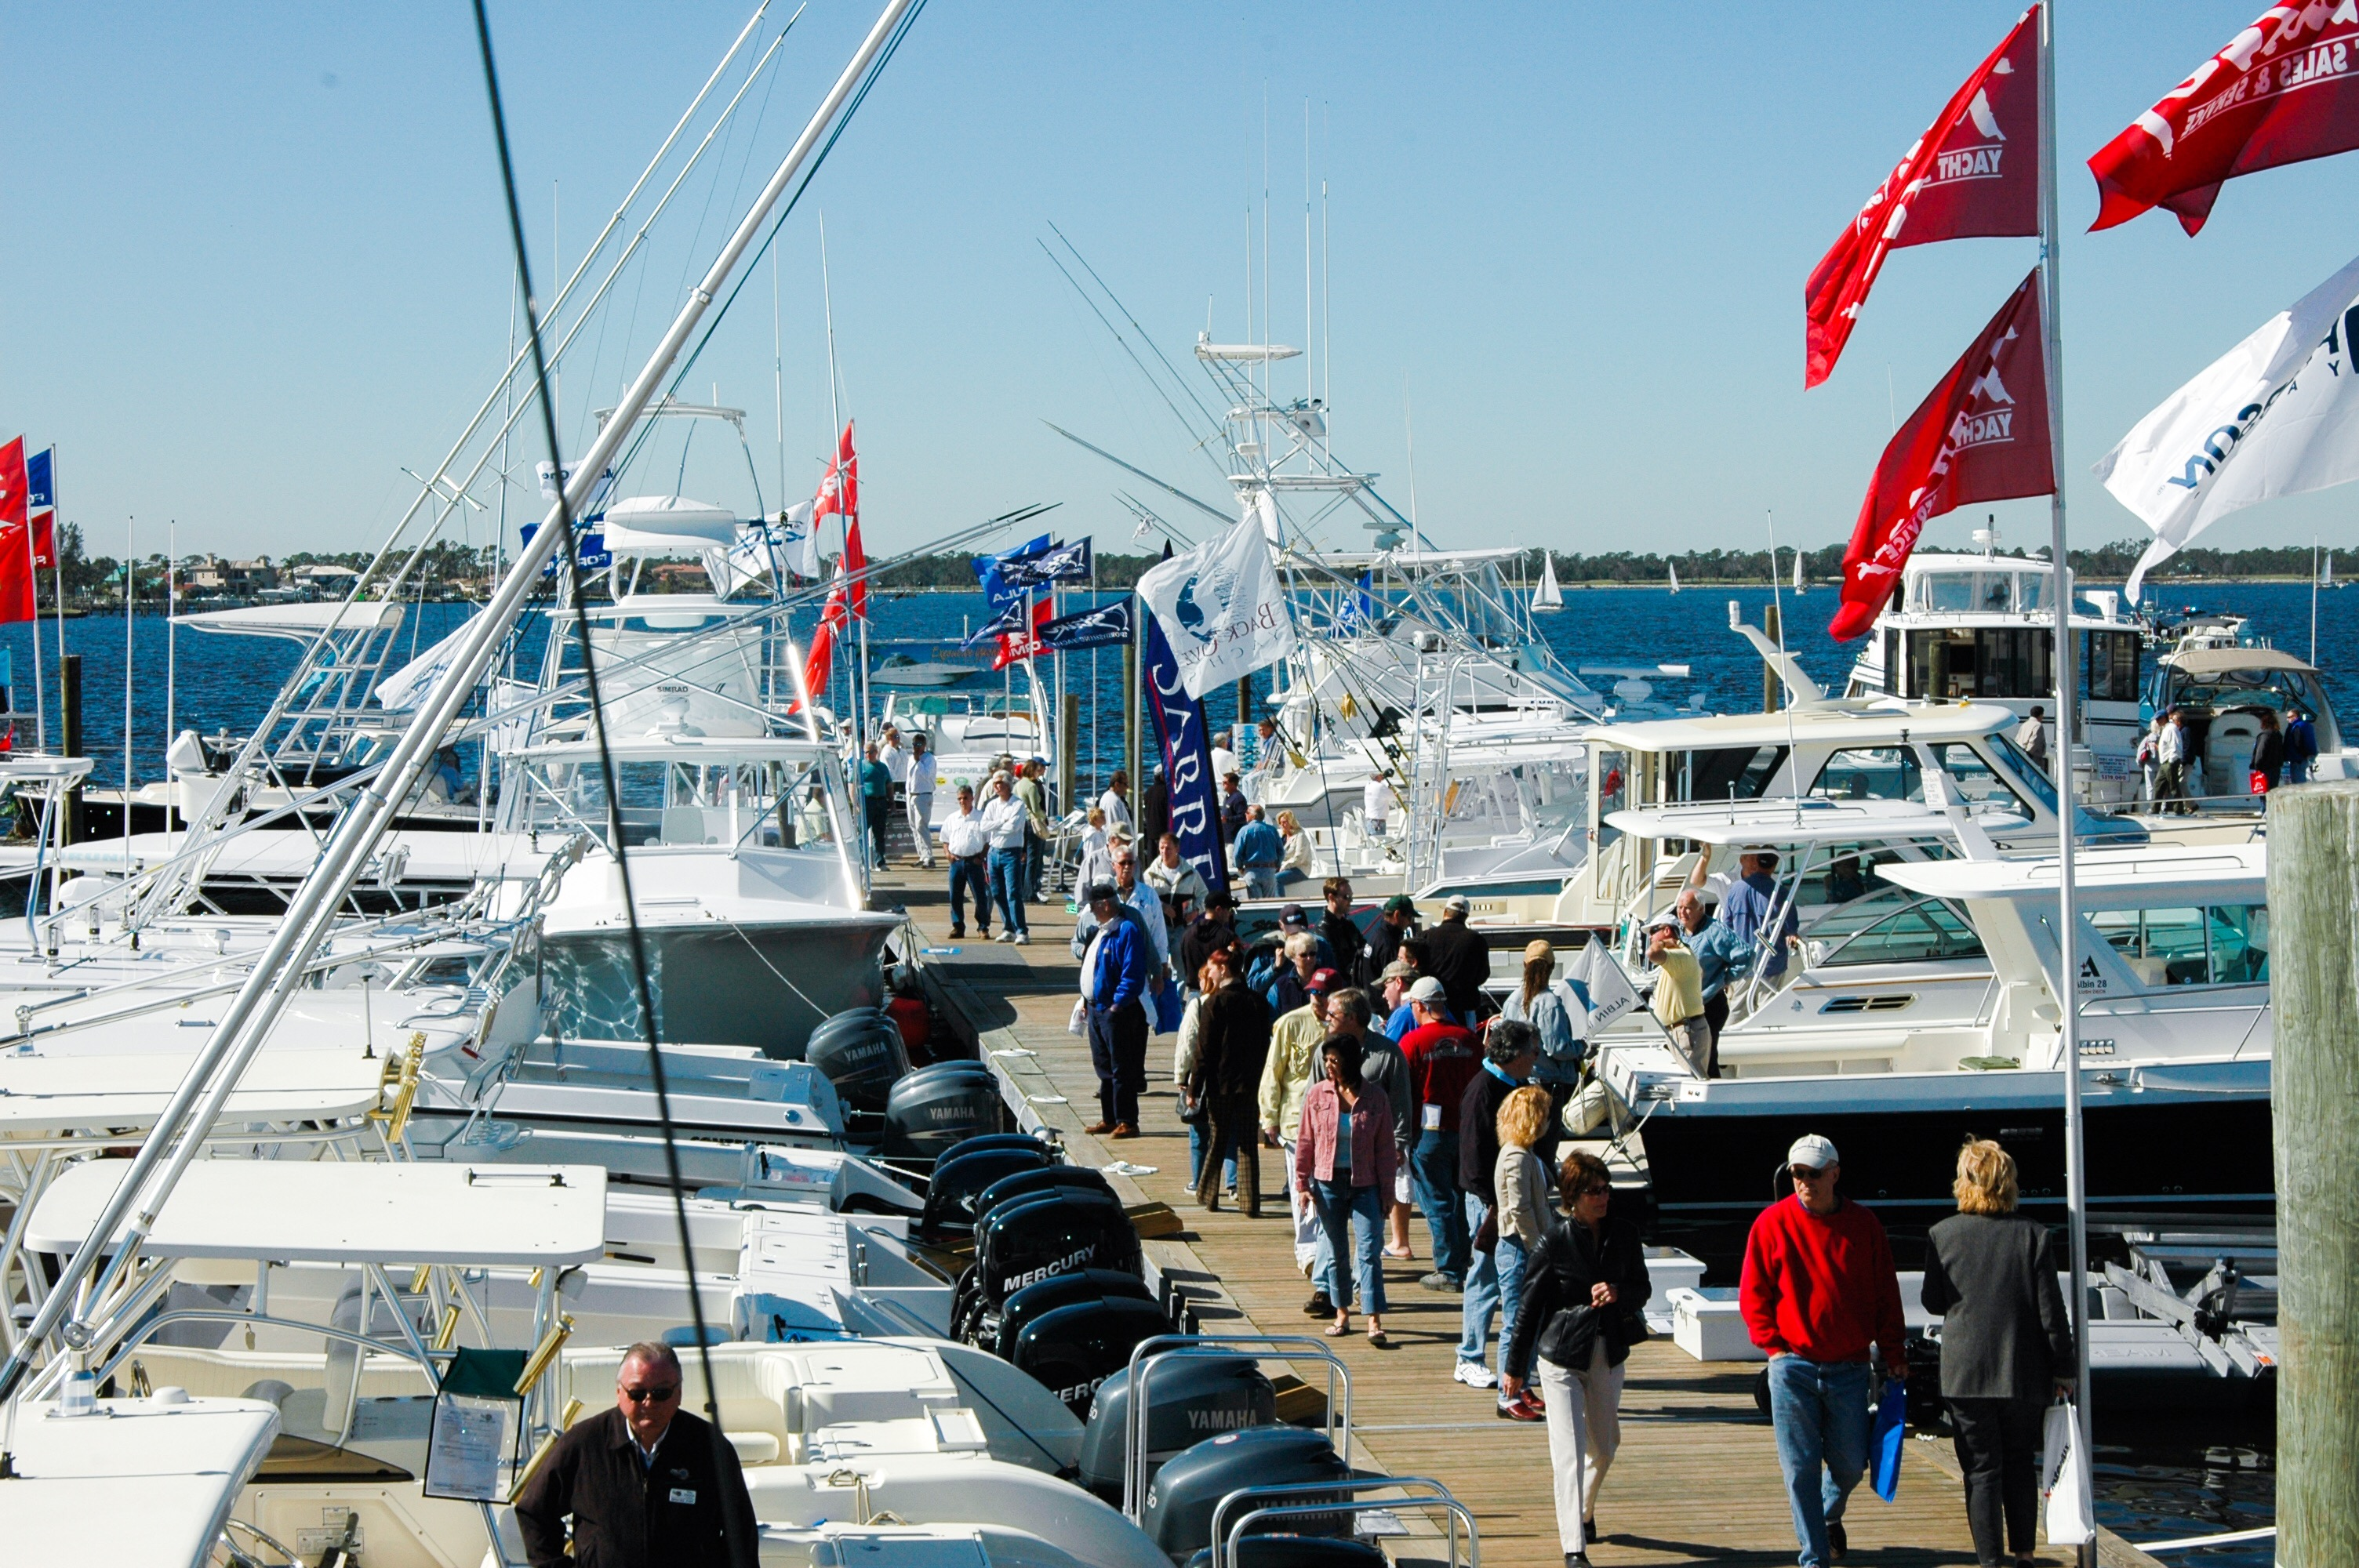 Stuart Boat Show - People walking the docks - Allsports Productions